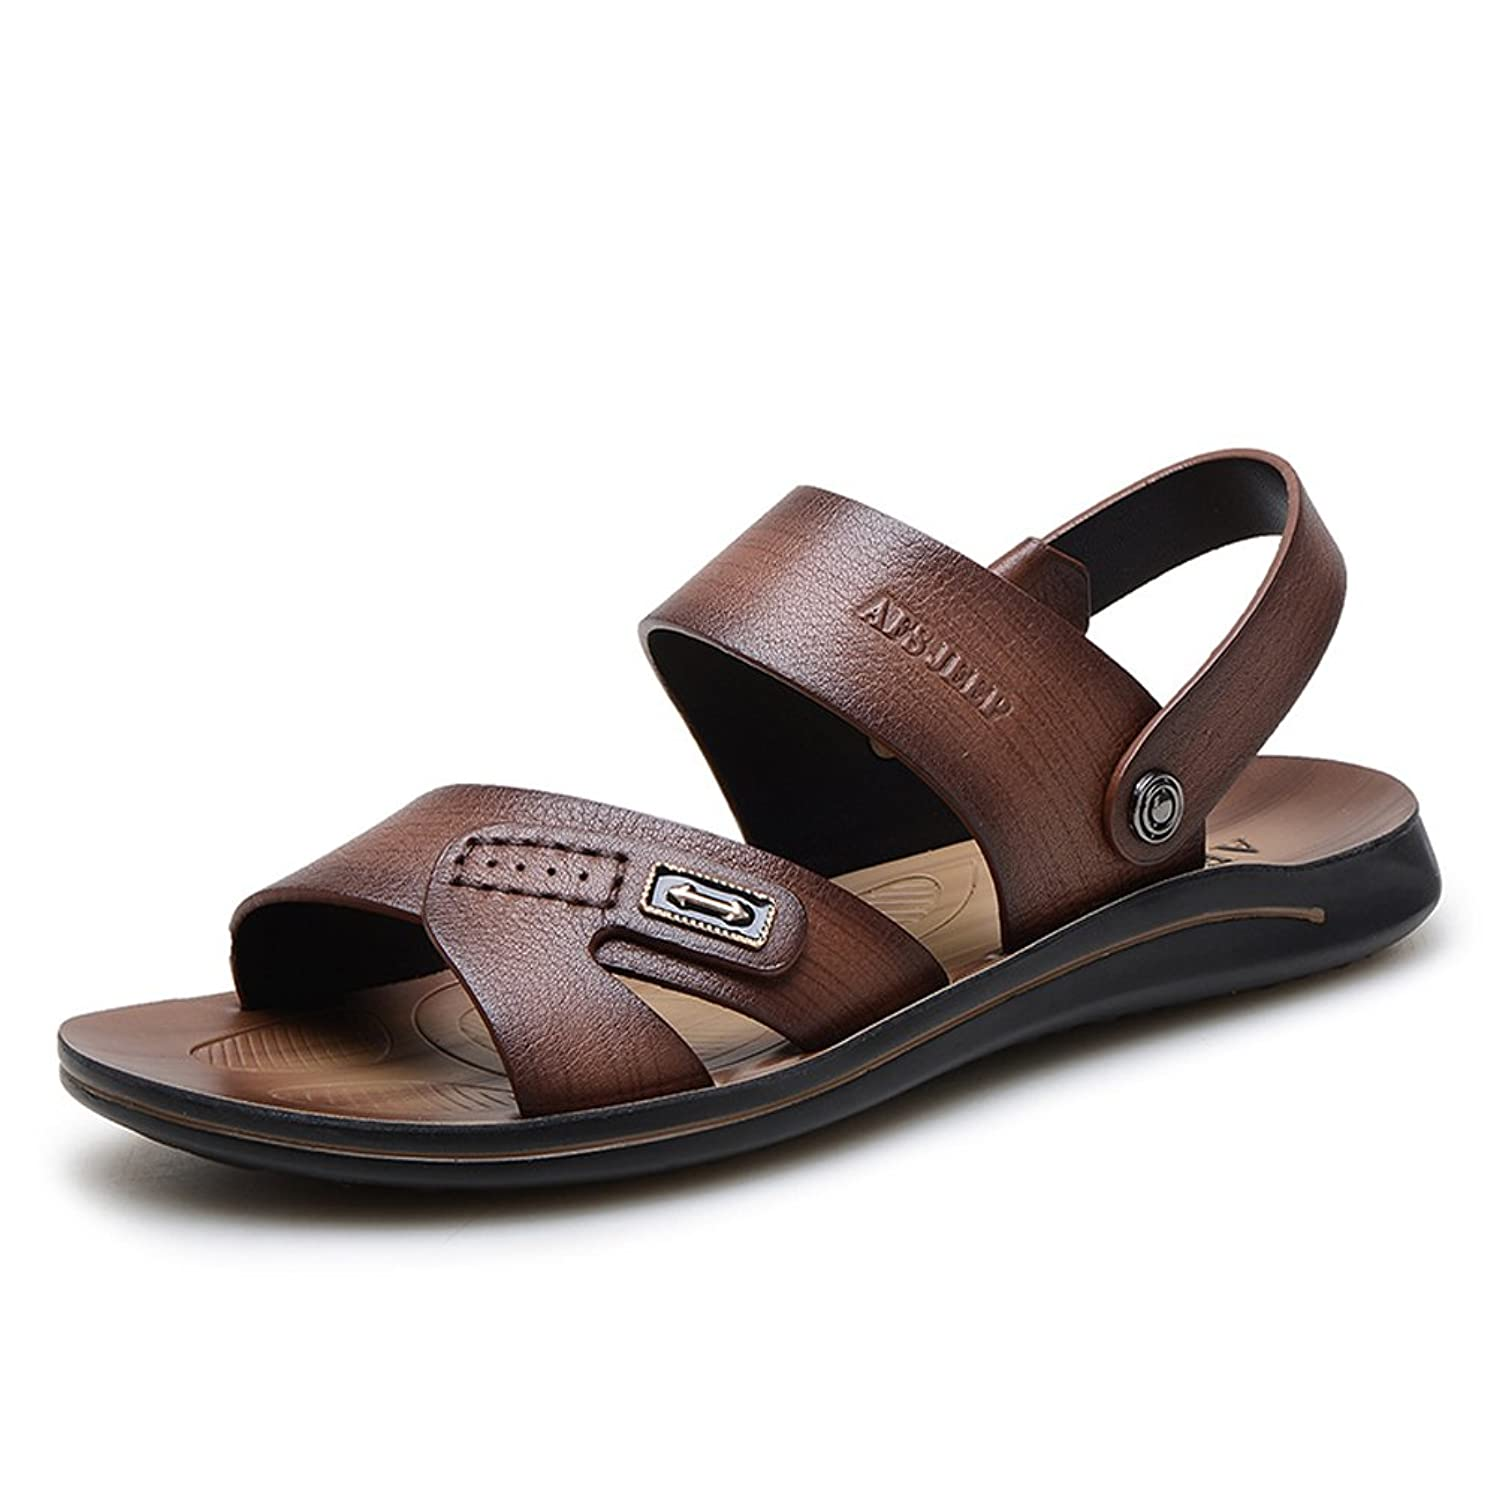 AFS JEEP Men's Beach Affair Strap Hollow Out Leather Dress Sandals